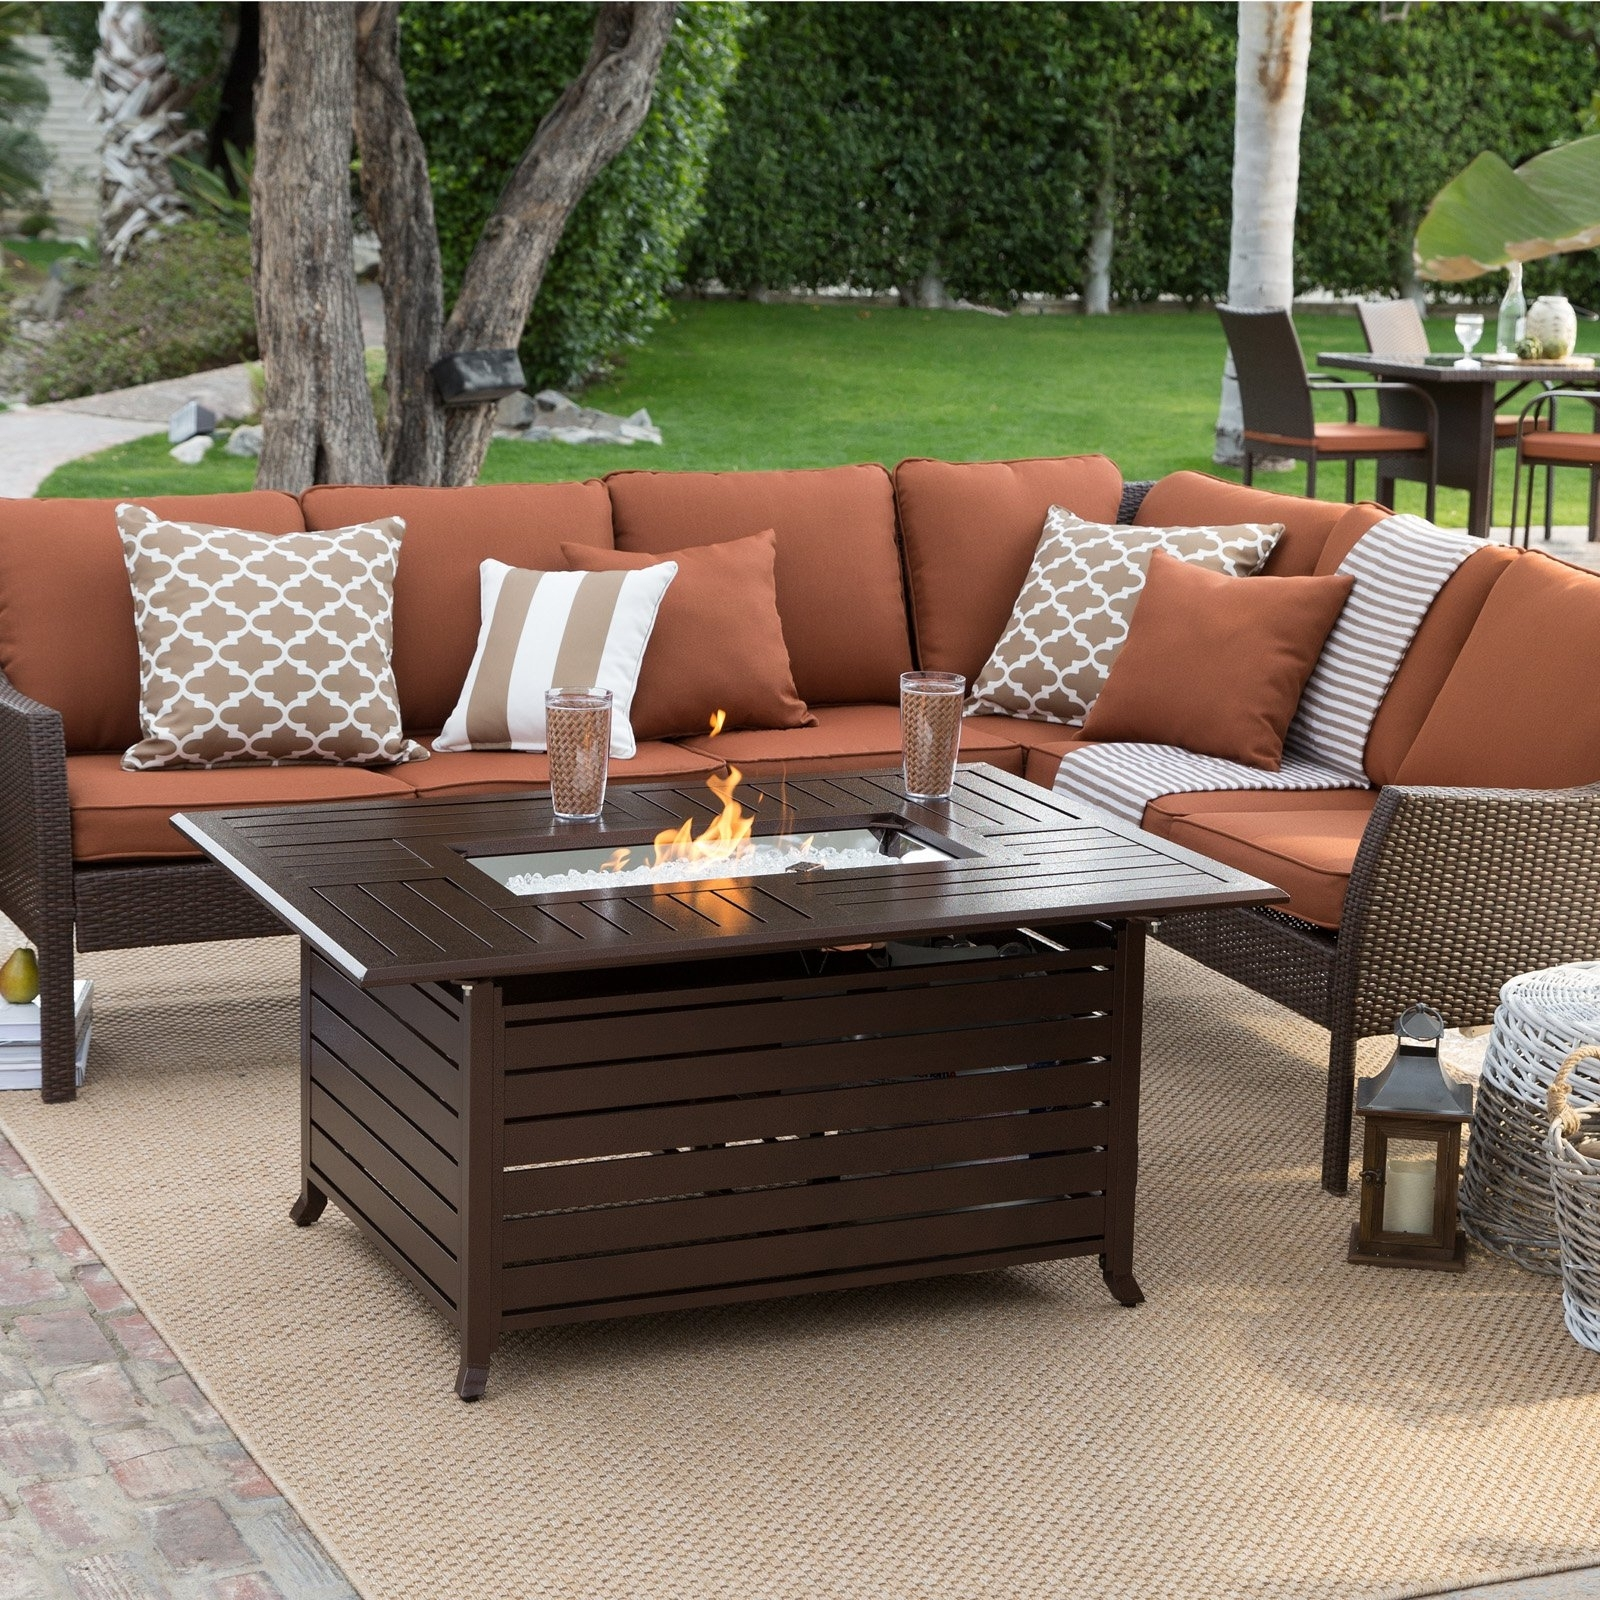 Patio Conversation Sets With Fire Table Intended For Recent Elegant Fire Pit Chairs For Sale Conversation Sets Deck Furniture (View 6 of 15)